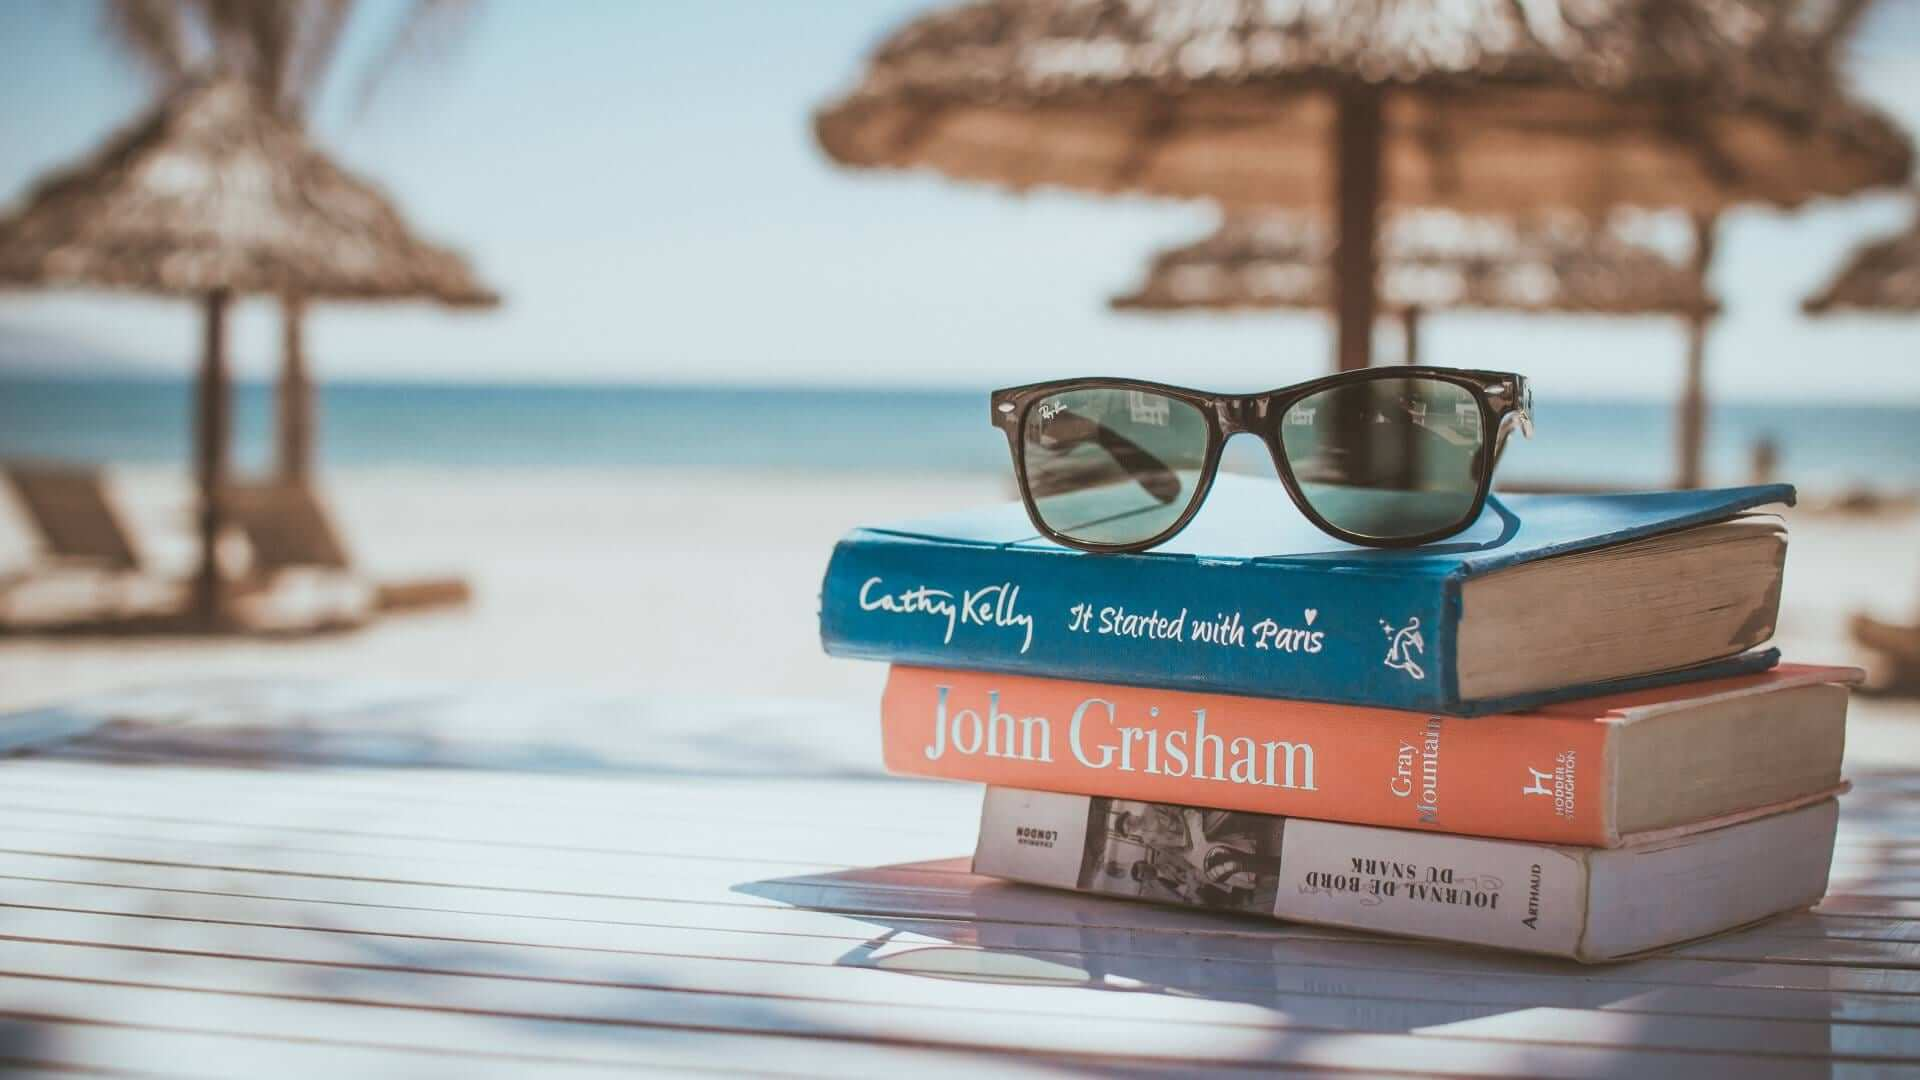 Three books and sunglasses in the shade on a table at the beach